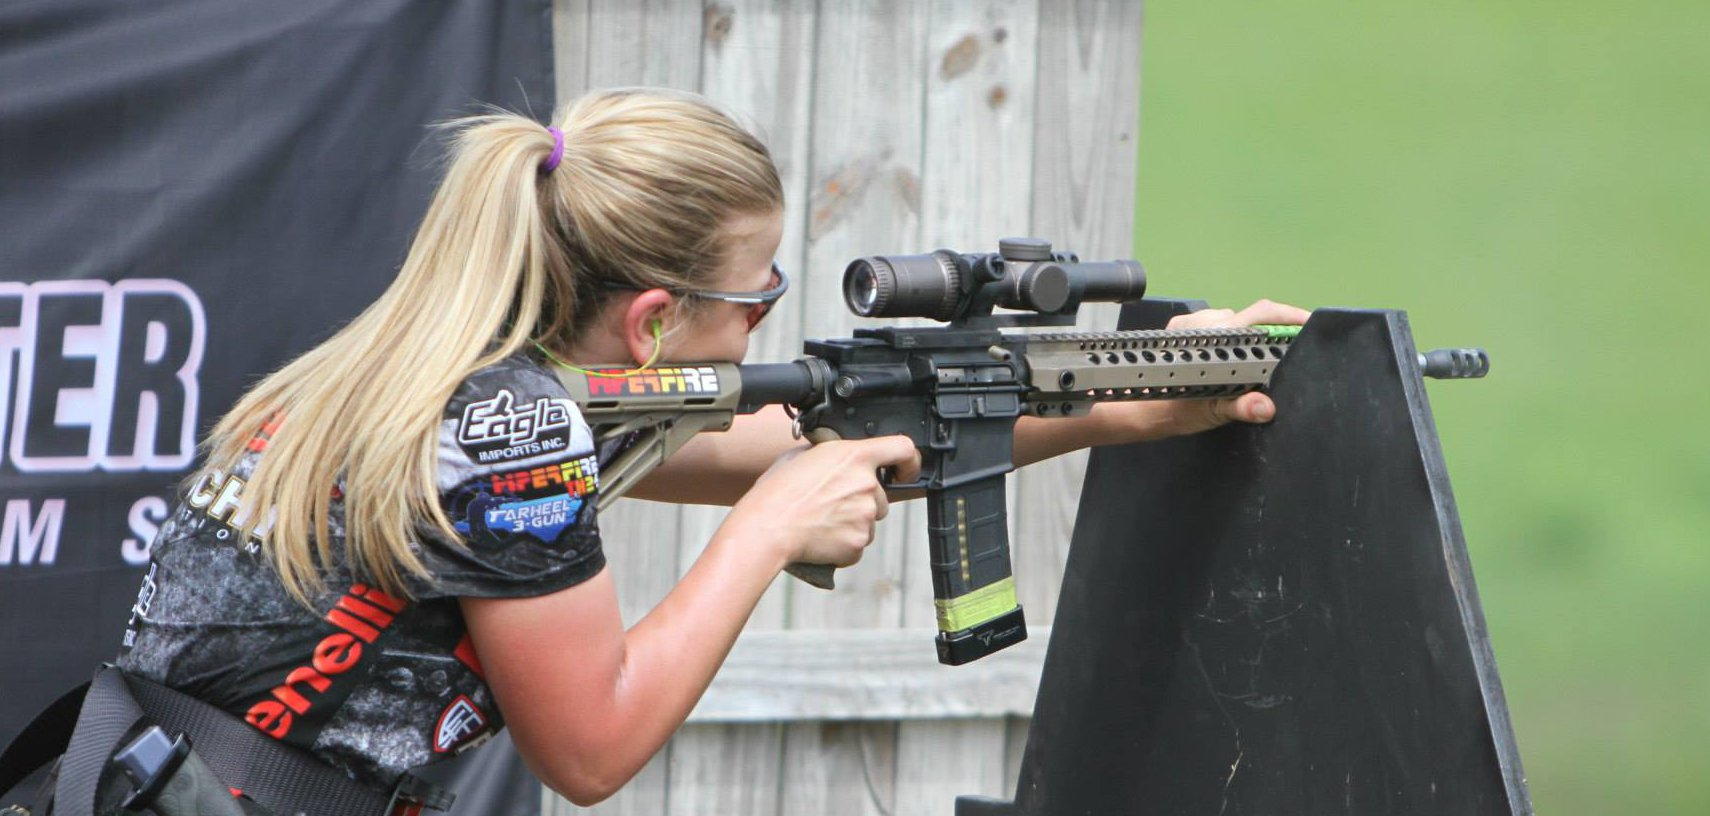 Eagle Imports Inc. Shooter, Heather Fitzhugh, Crowned 3rd High Lady at the Bushmaster Tarheel 3-Gun Challenge